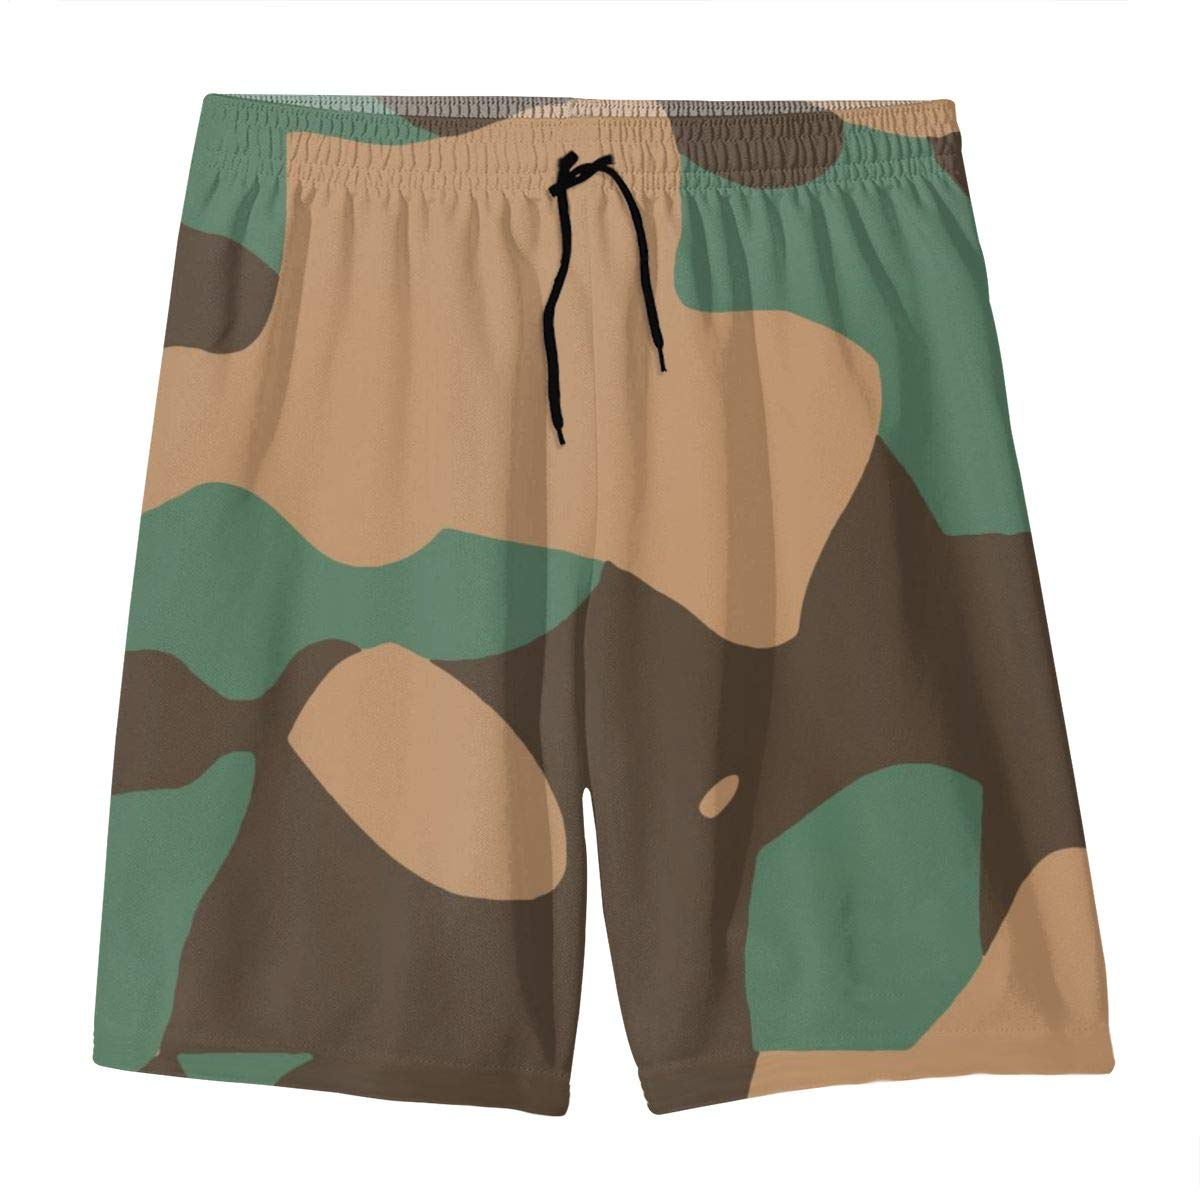 CCYT Camouflage Green Pattern Bathing Suits Teens Quick-Drying Surf Beach Pants Boardshort